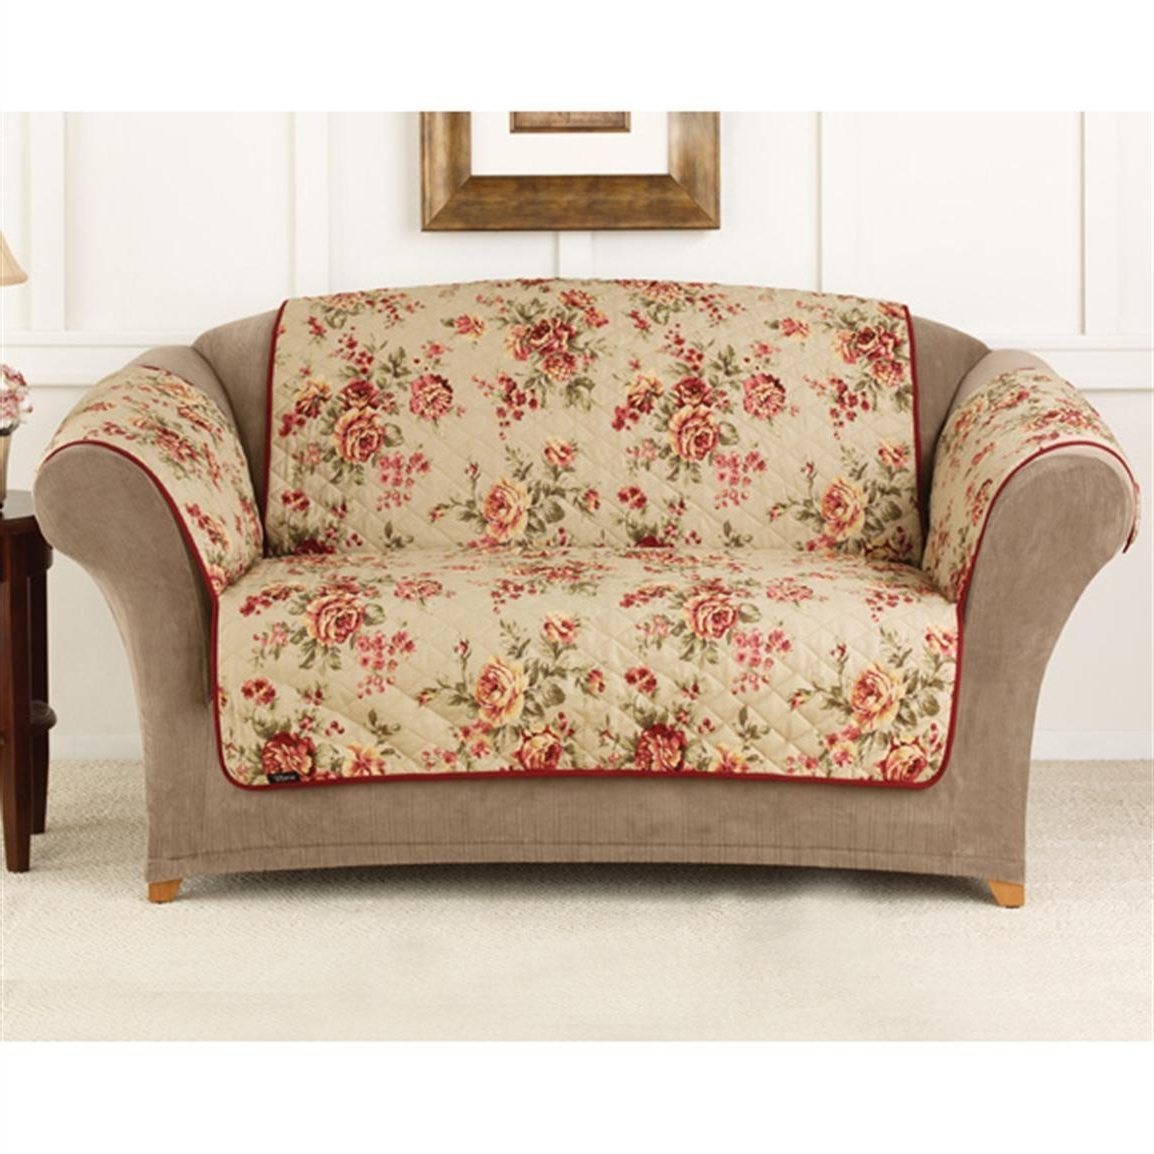 Trendy Chintz Sofas Pertaining To Furniture : Covers For Sofas And Couch Sure Fit Lexington Floral (View 17 of 20)